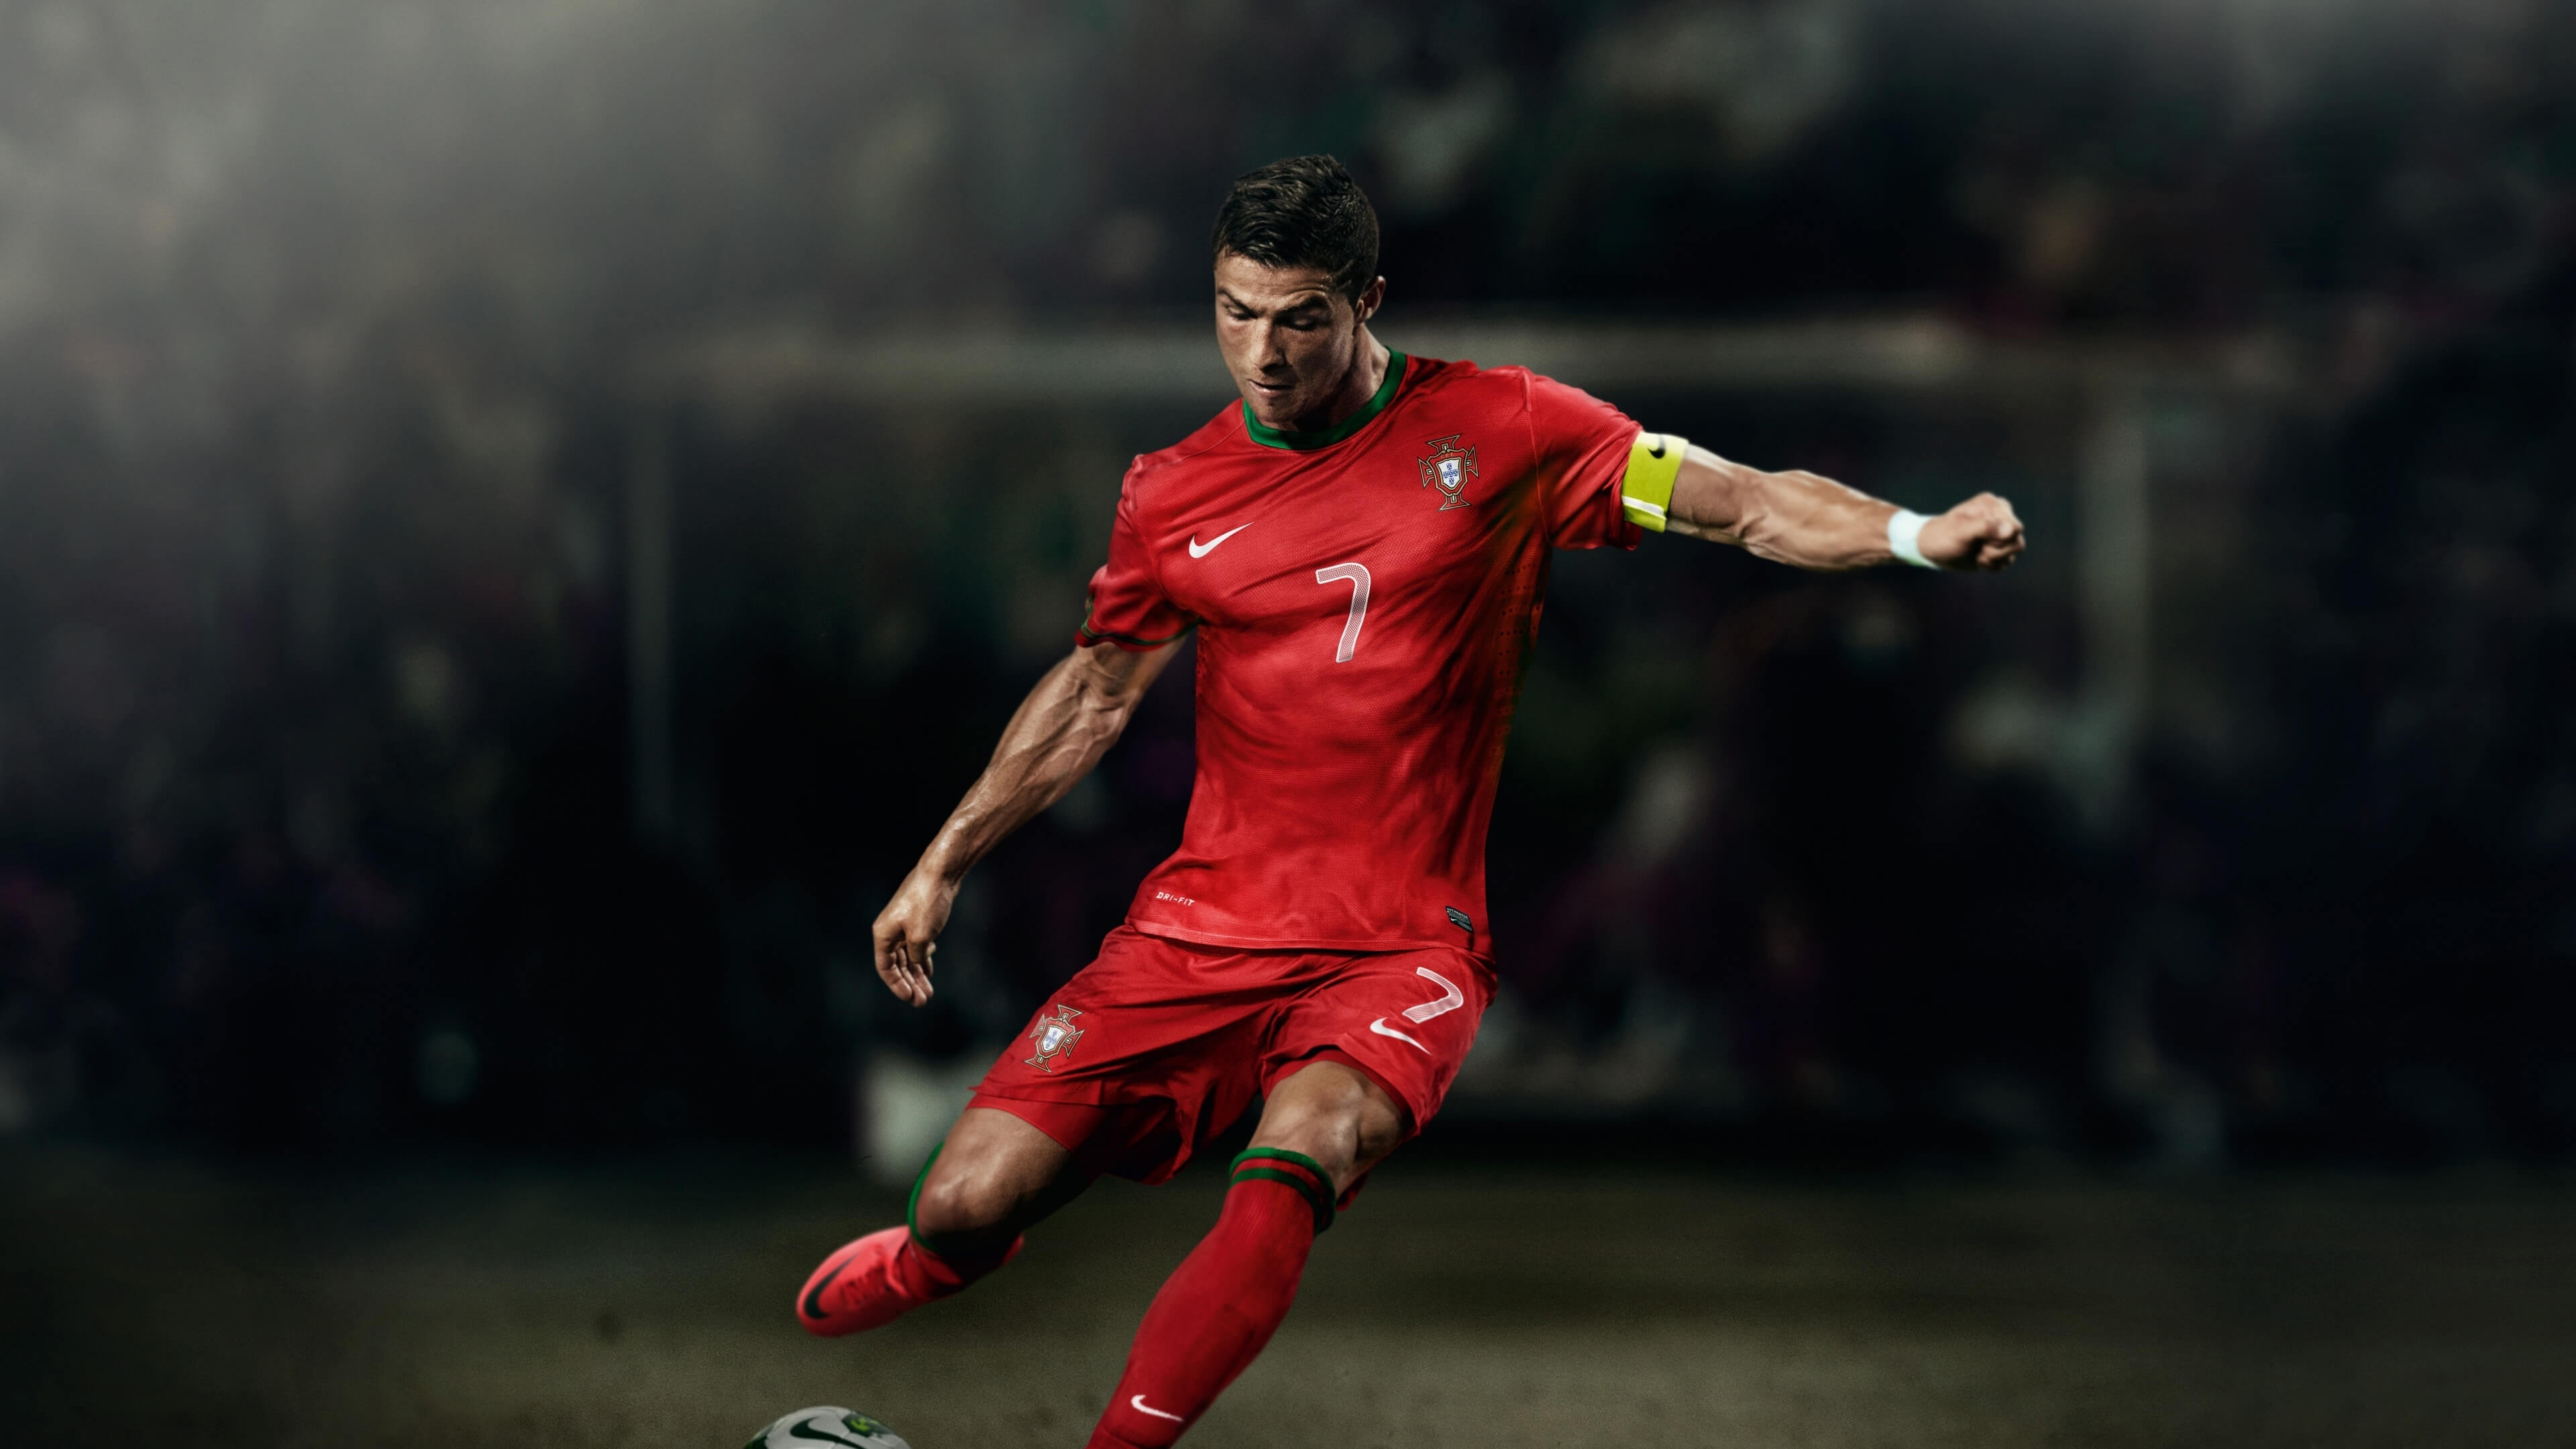 10 Top Foot Ball Players Wallpapers FULL HD 1920×1080 For PC Background